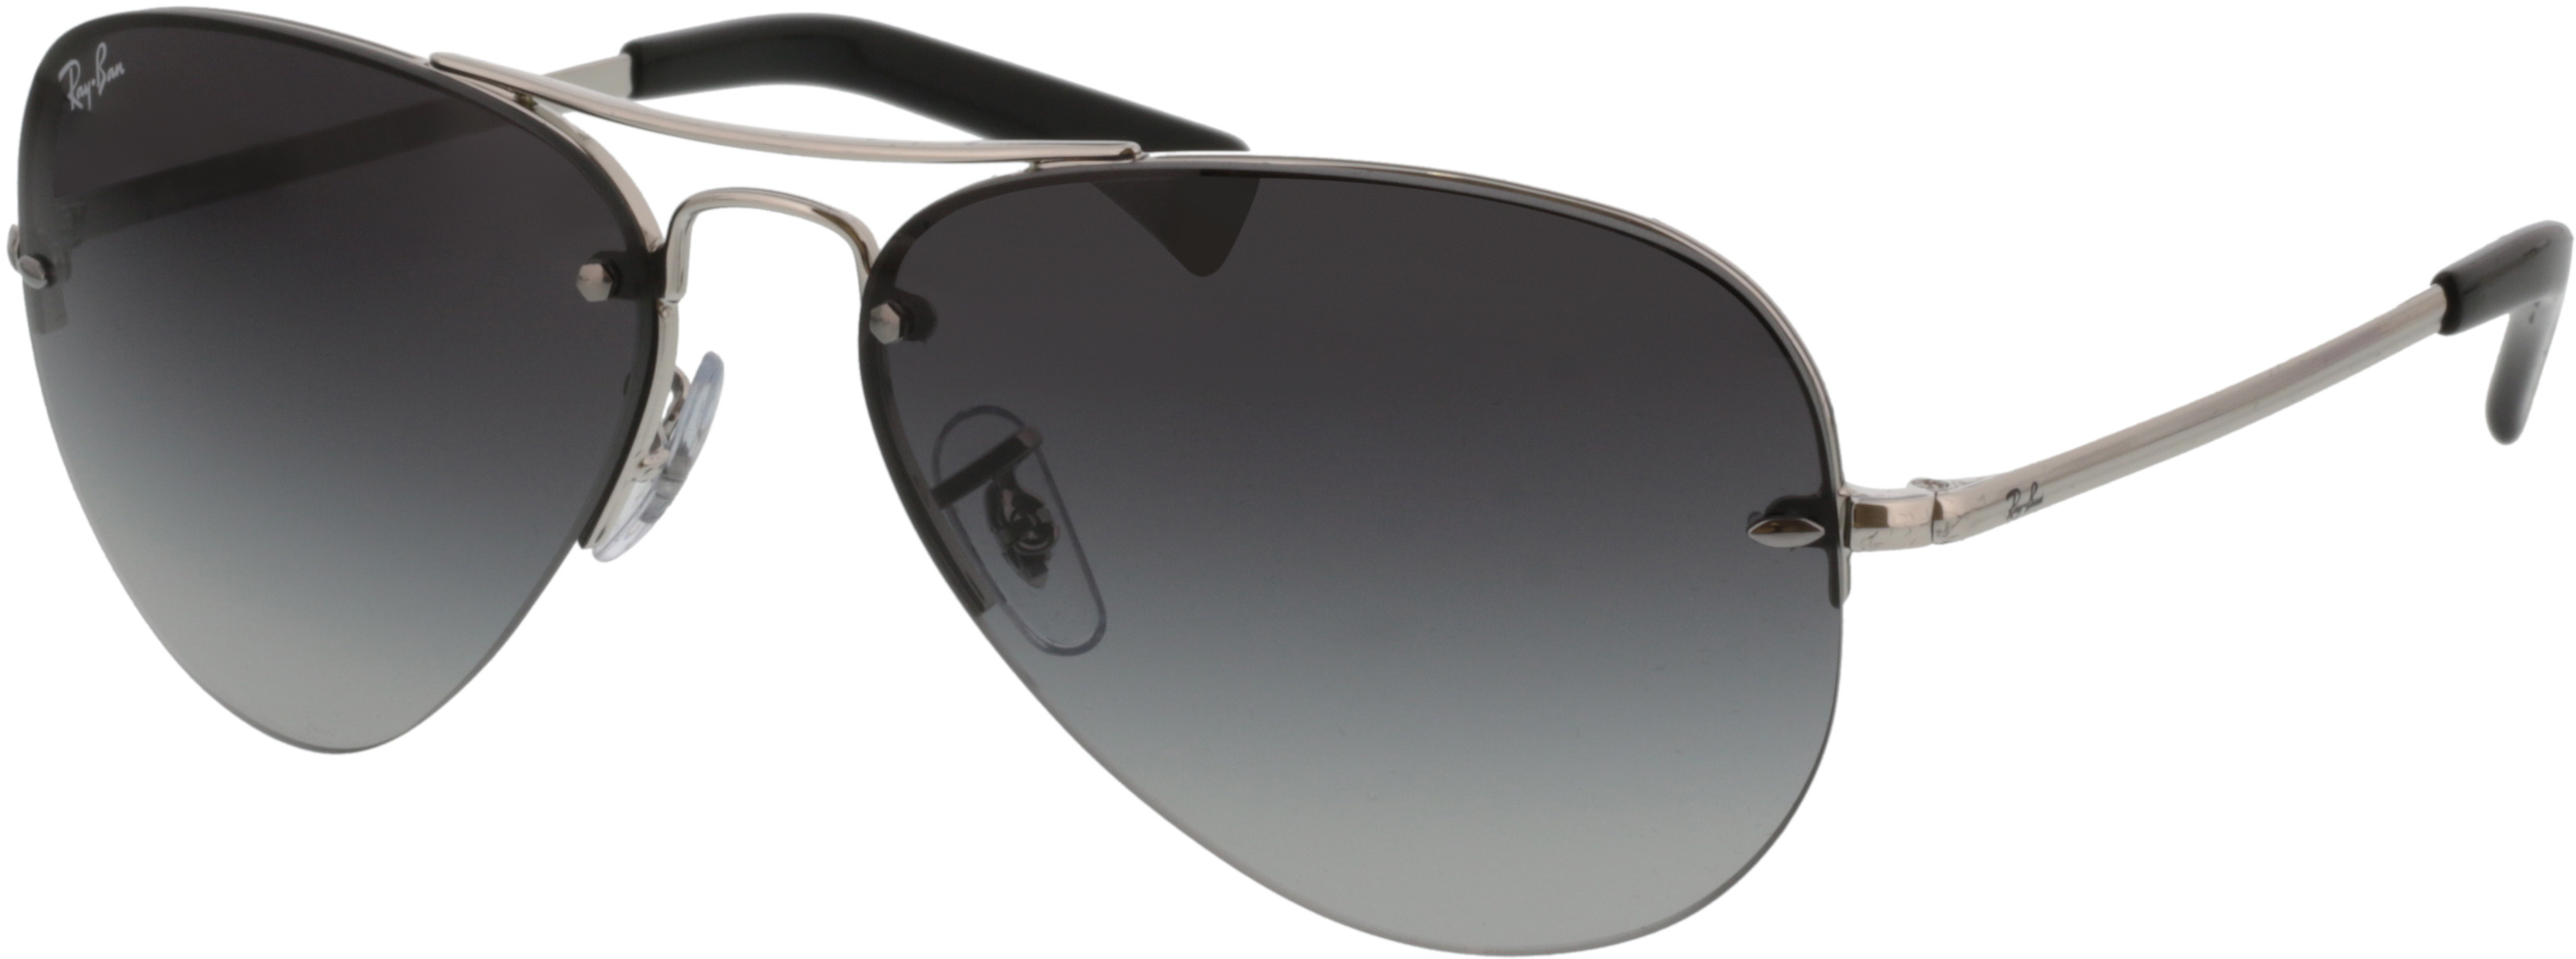 Picture of glasses model Ray-Ban RB3449 003/8G 59-14 in angle 330